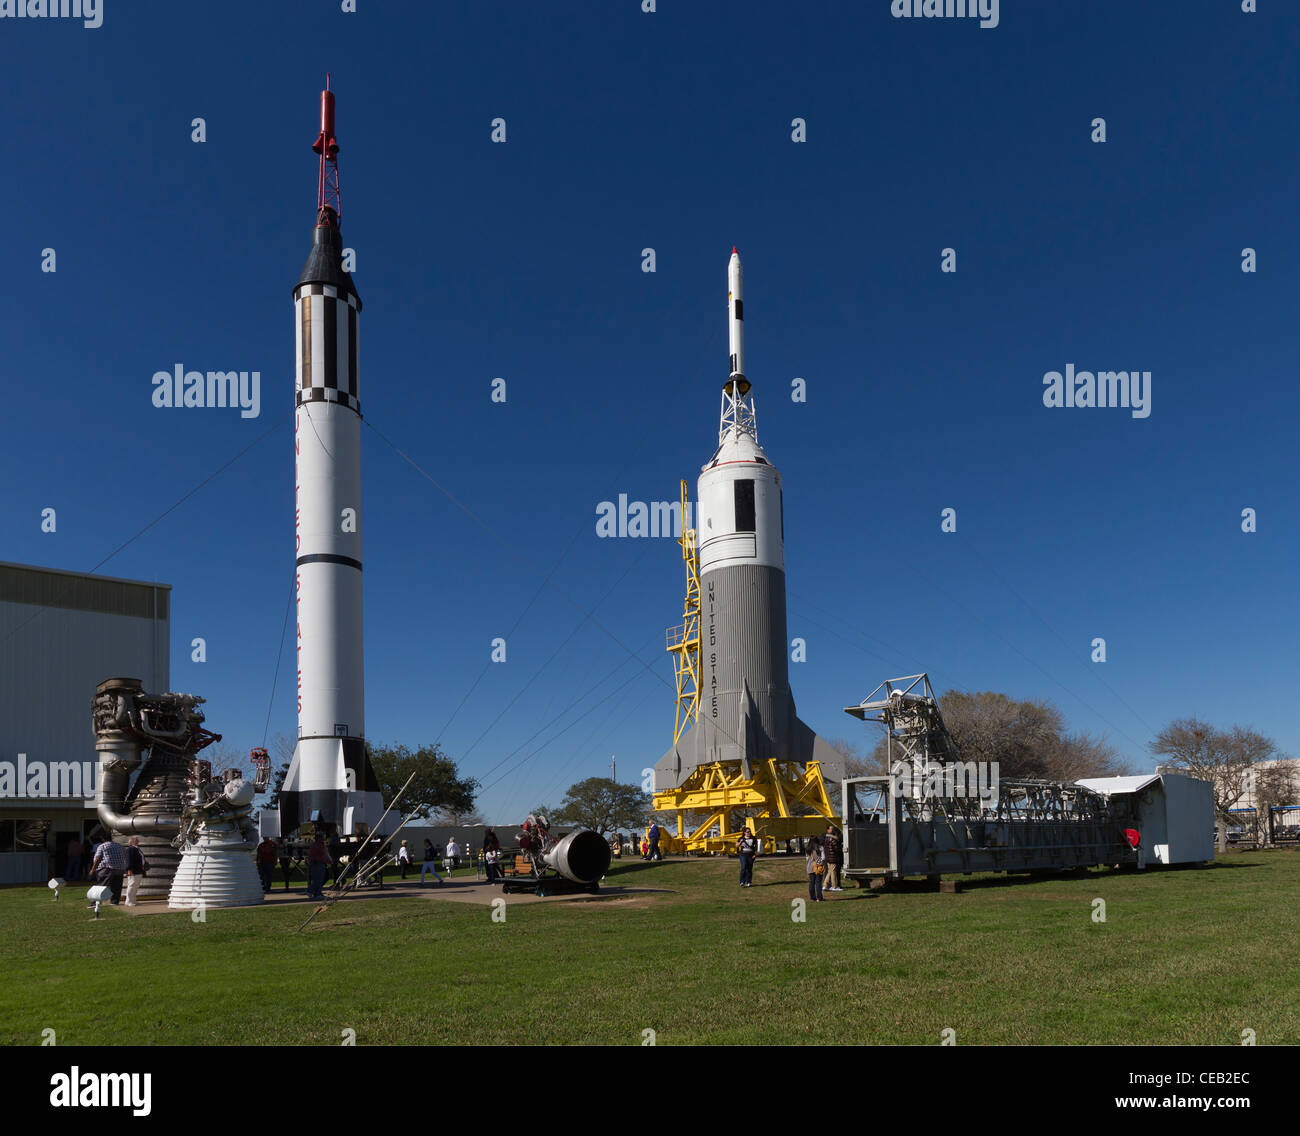 Rocket Park at the Johnson Space Center, Texas. - Stock Image